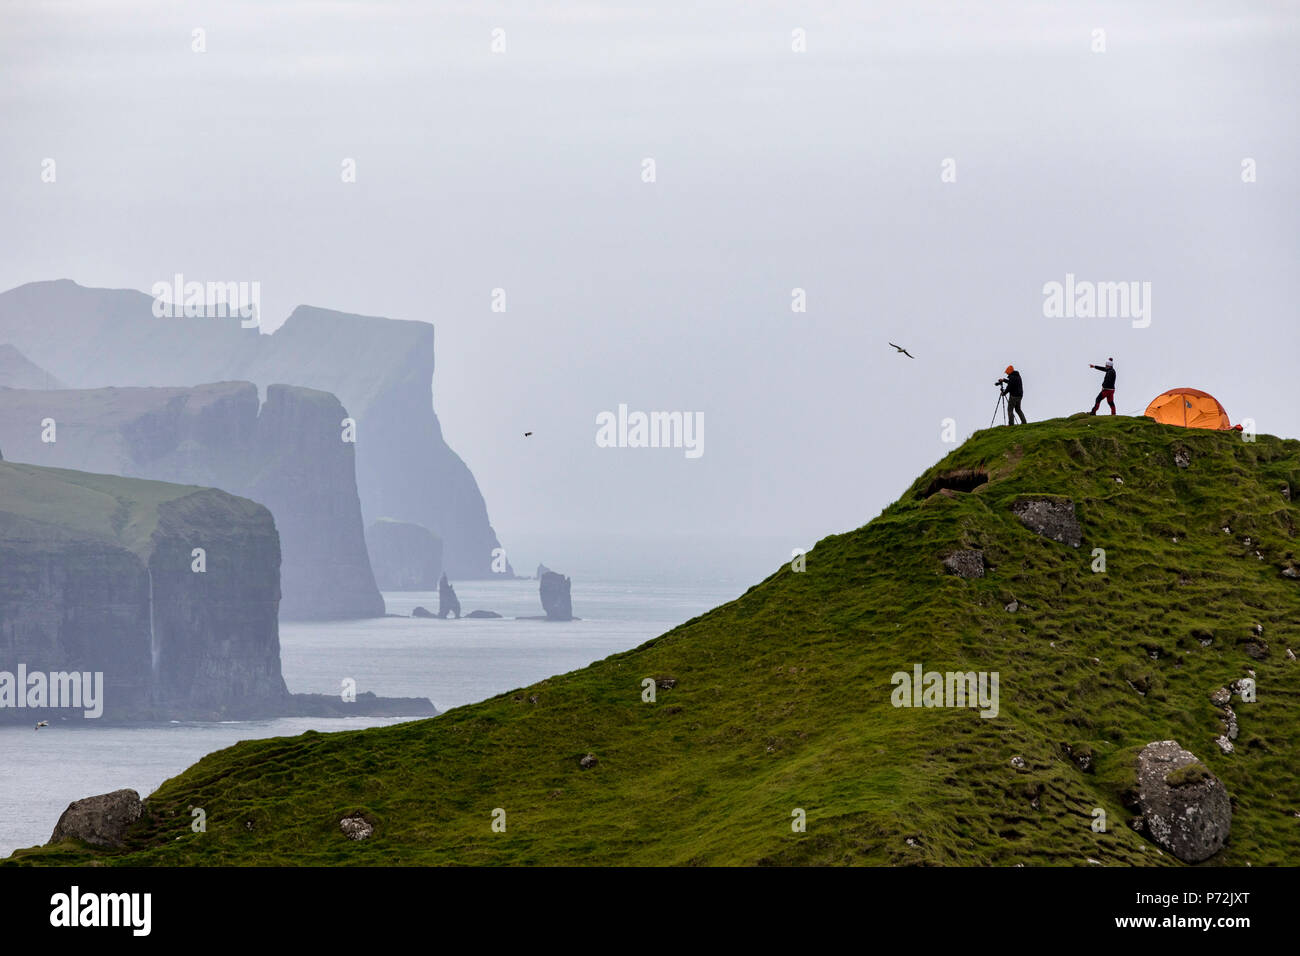 Hikers and tent on cliffs, Kalsoy Island, Faroe Islands, Denmark, Europe - Stock Image